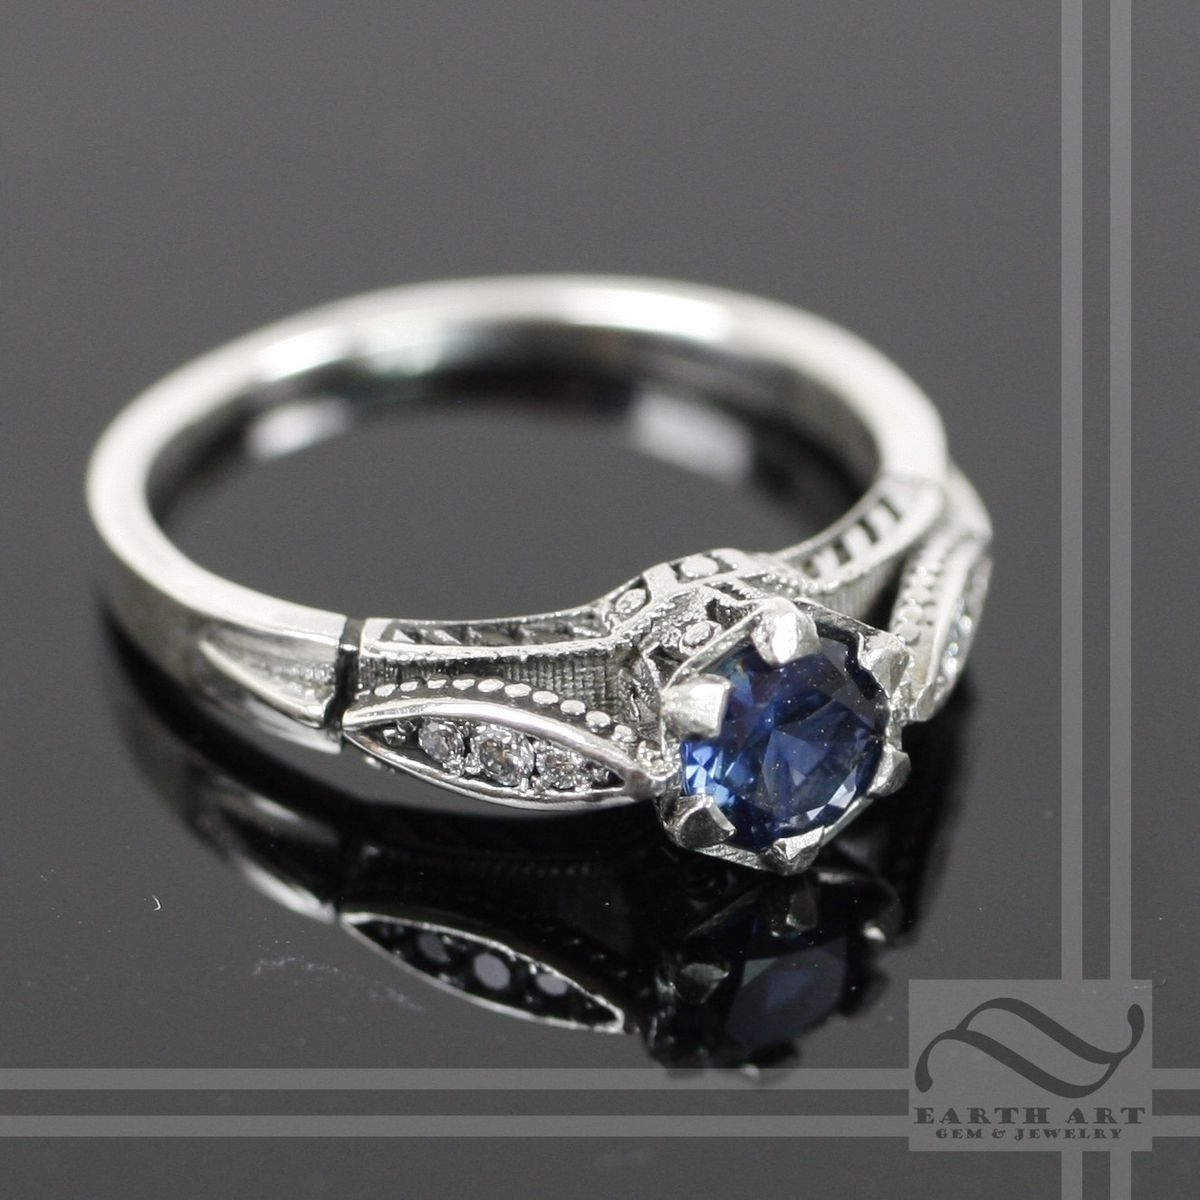 Buy A Hand Crafted Vintage Style Sapphire And Diamond Ring, Made To Within Most Recently Released Vintage Style Sapphire Engagement Rings (View 3 of 15)